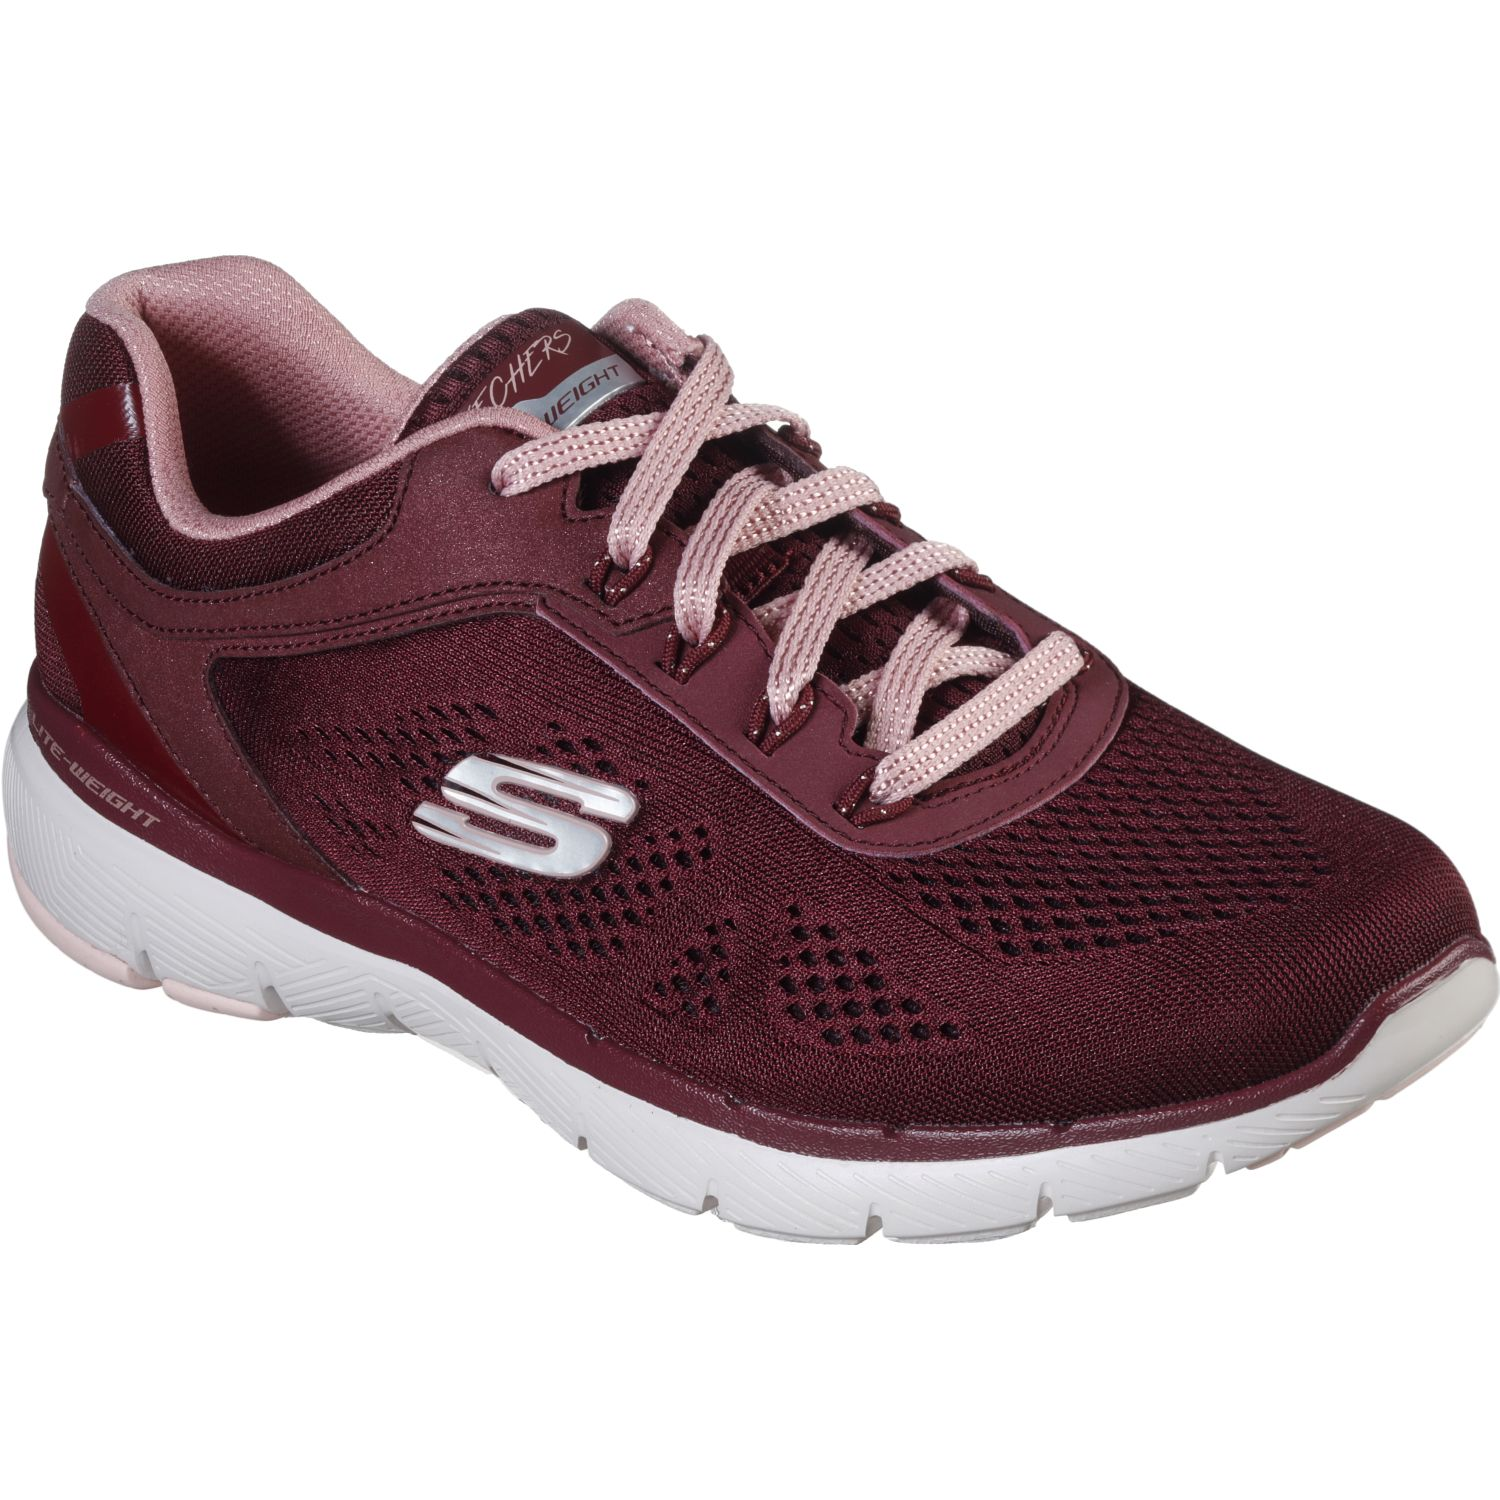 Skechers FLEX APPEAL 3.0 Burgundy Running en pista